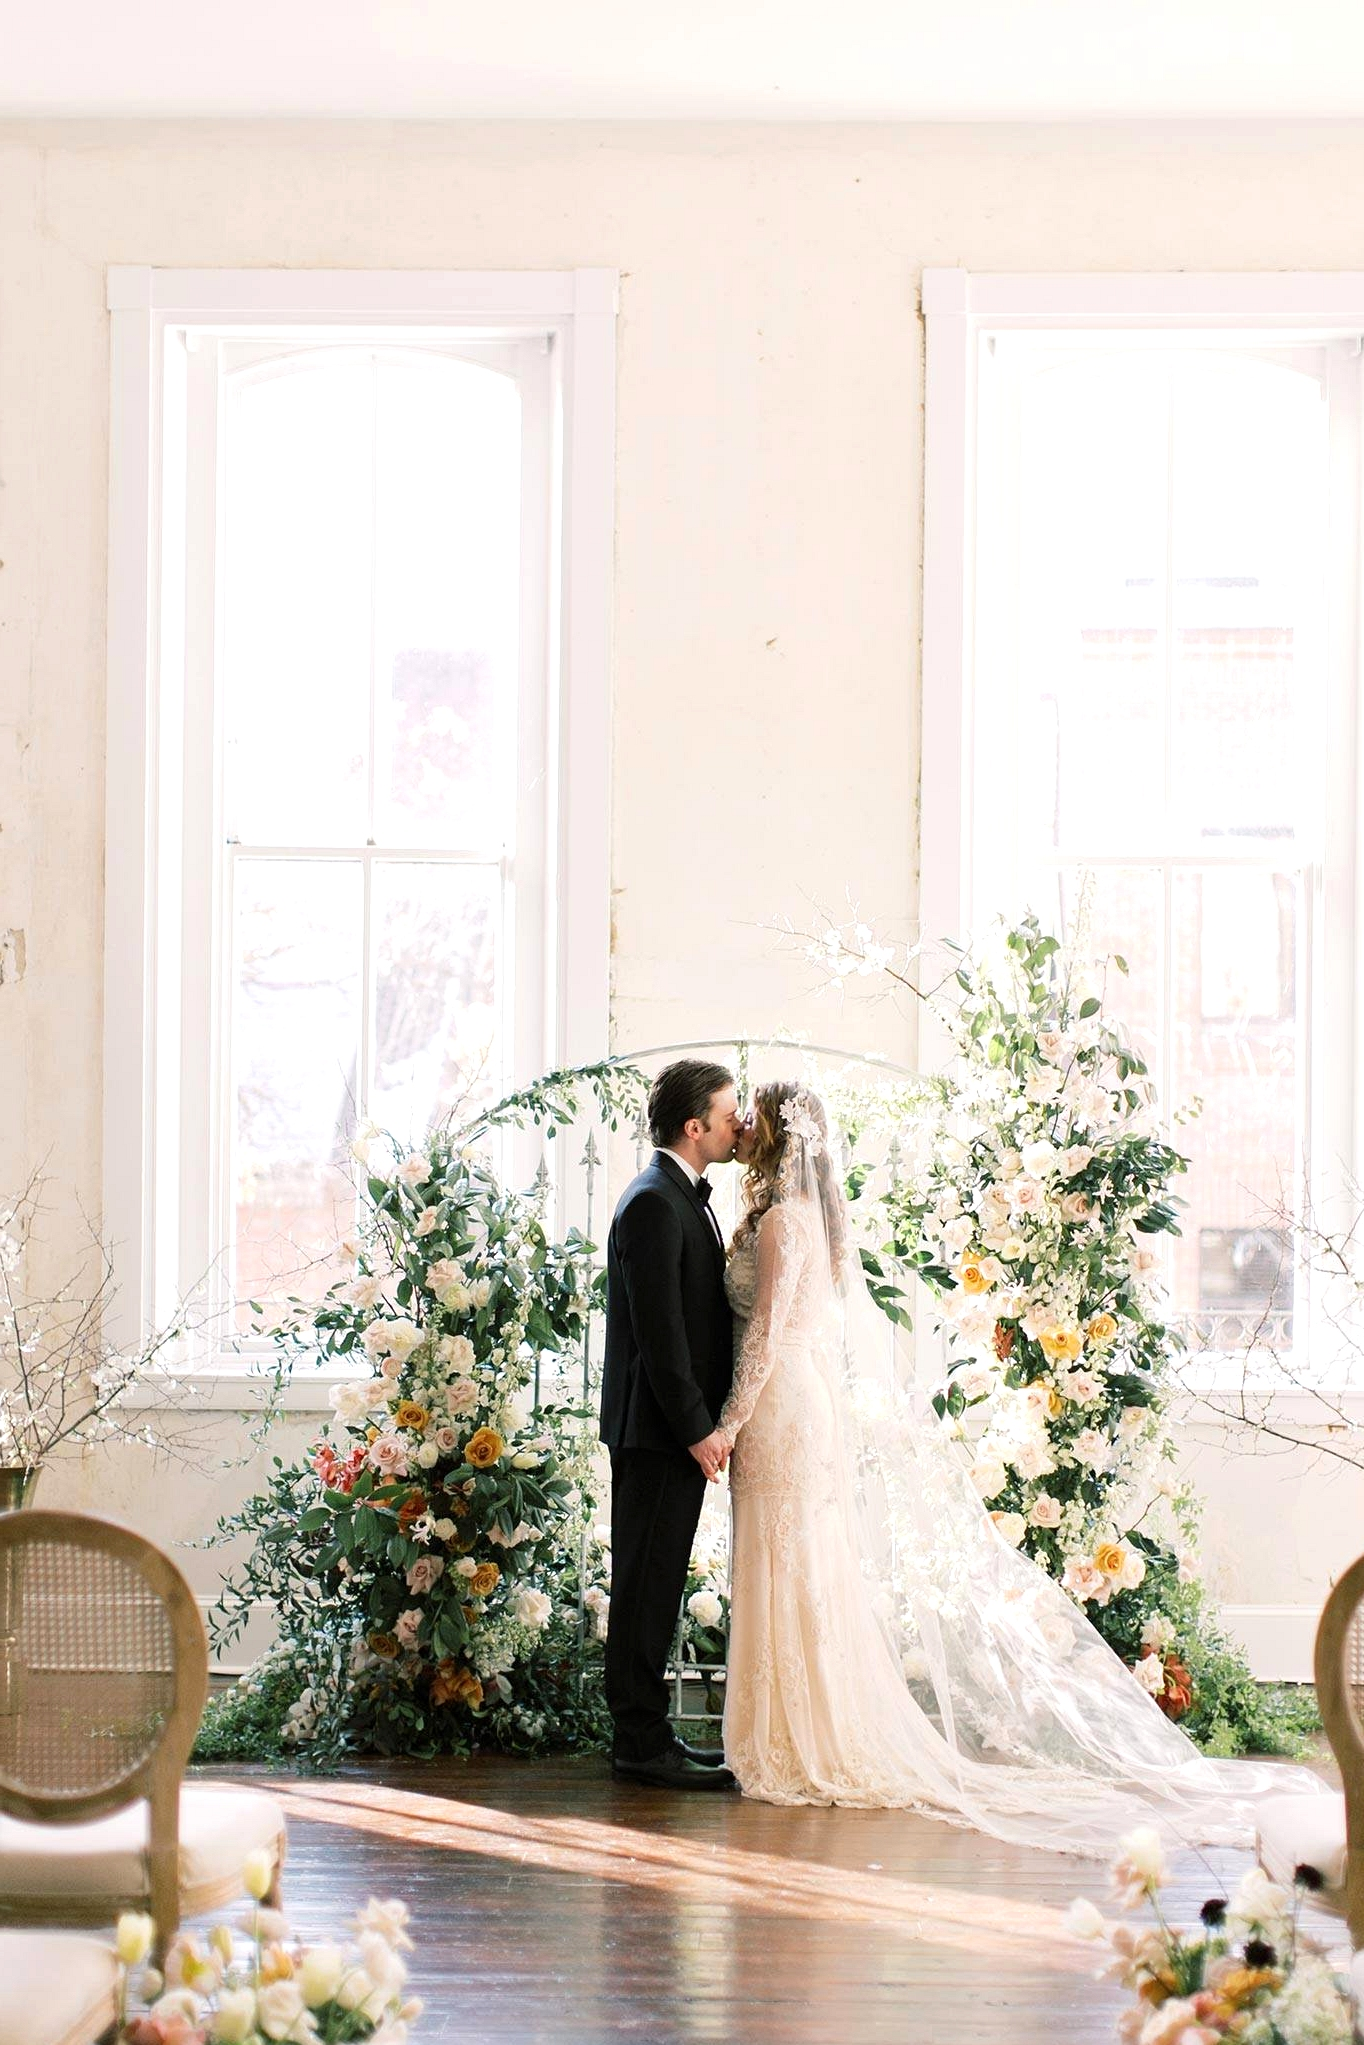 Old World wedding backdrop with a floral iron gate and bride and groom kissing